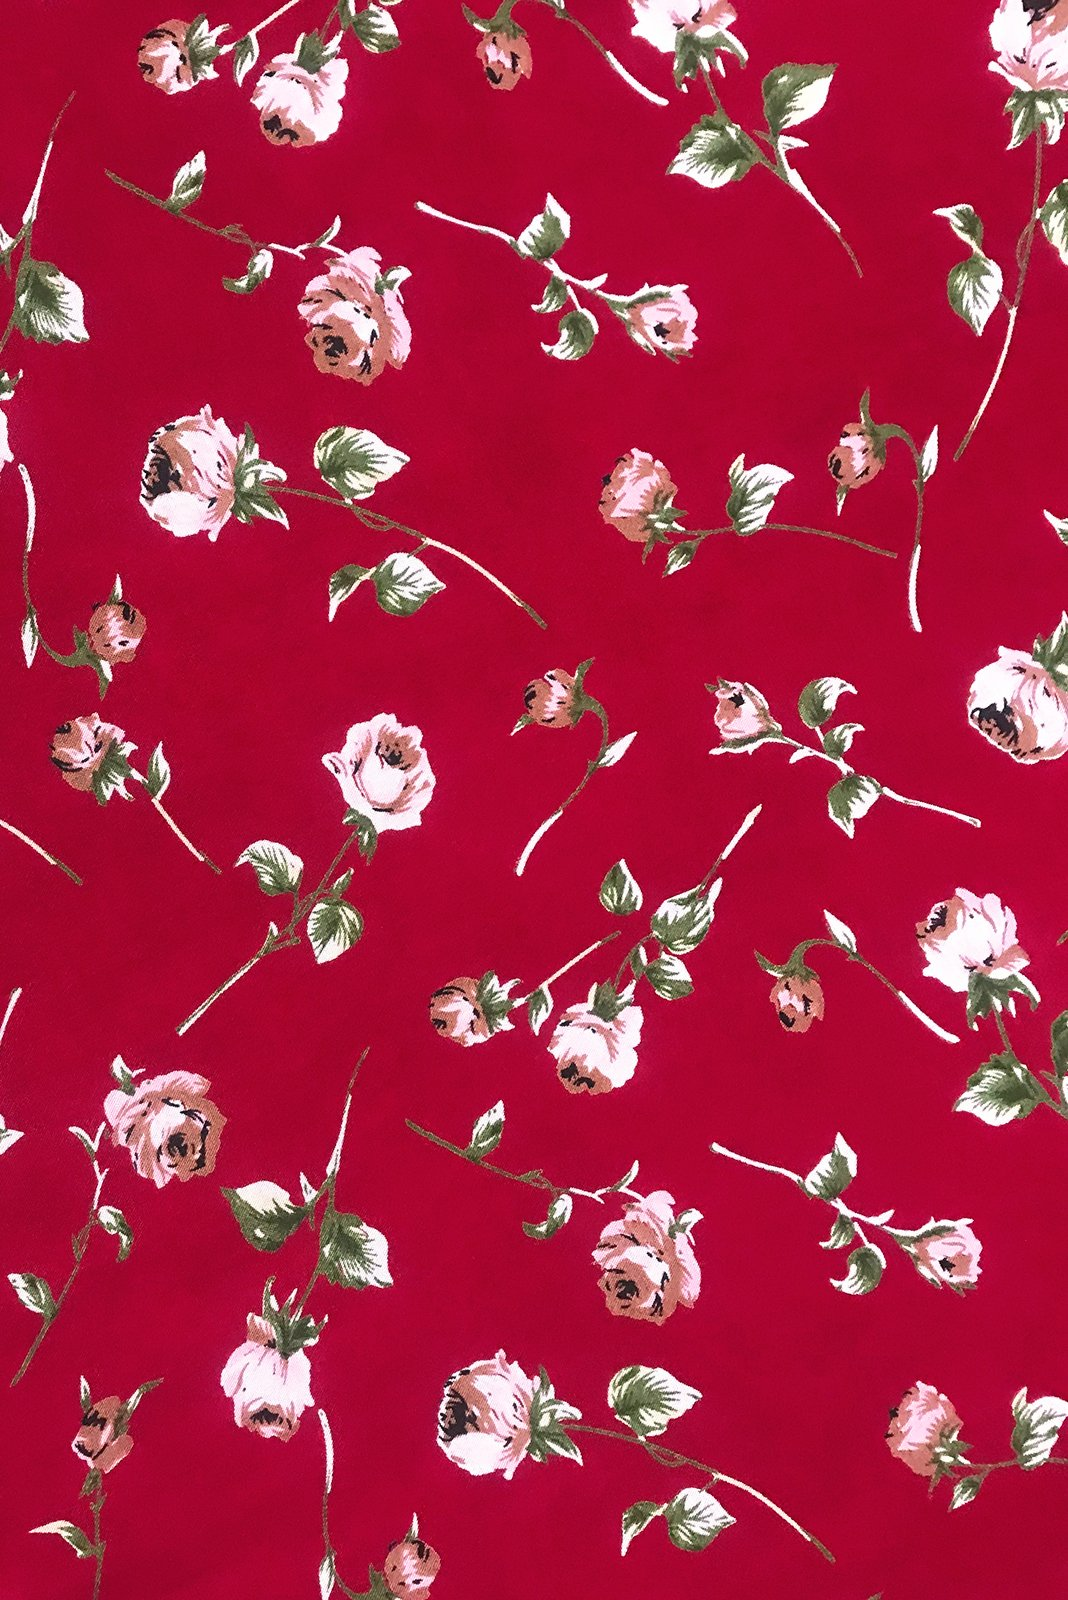 Fabric Swatch of Petal Red Rosebud Maxi Wrap Dress featuring 100 % rayon in red base with rose print.